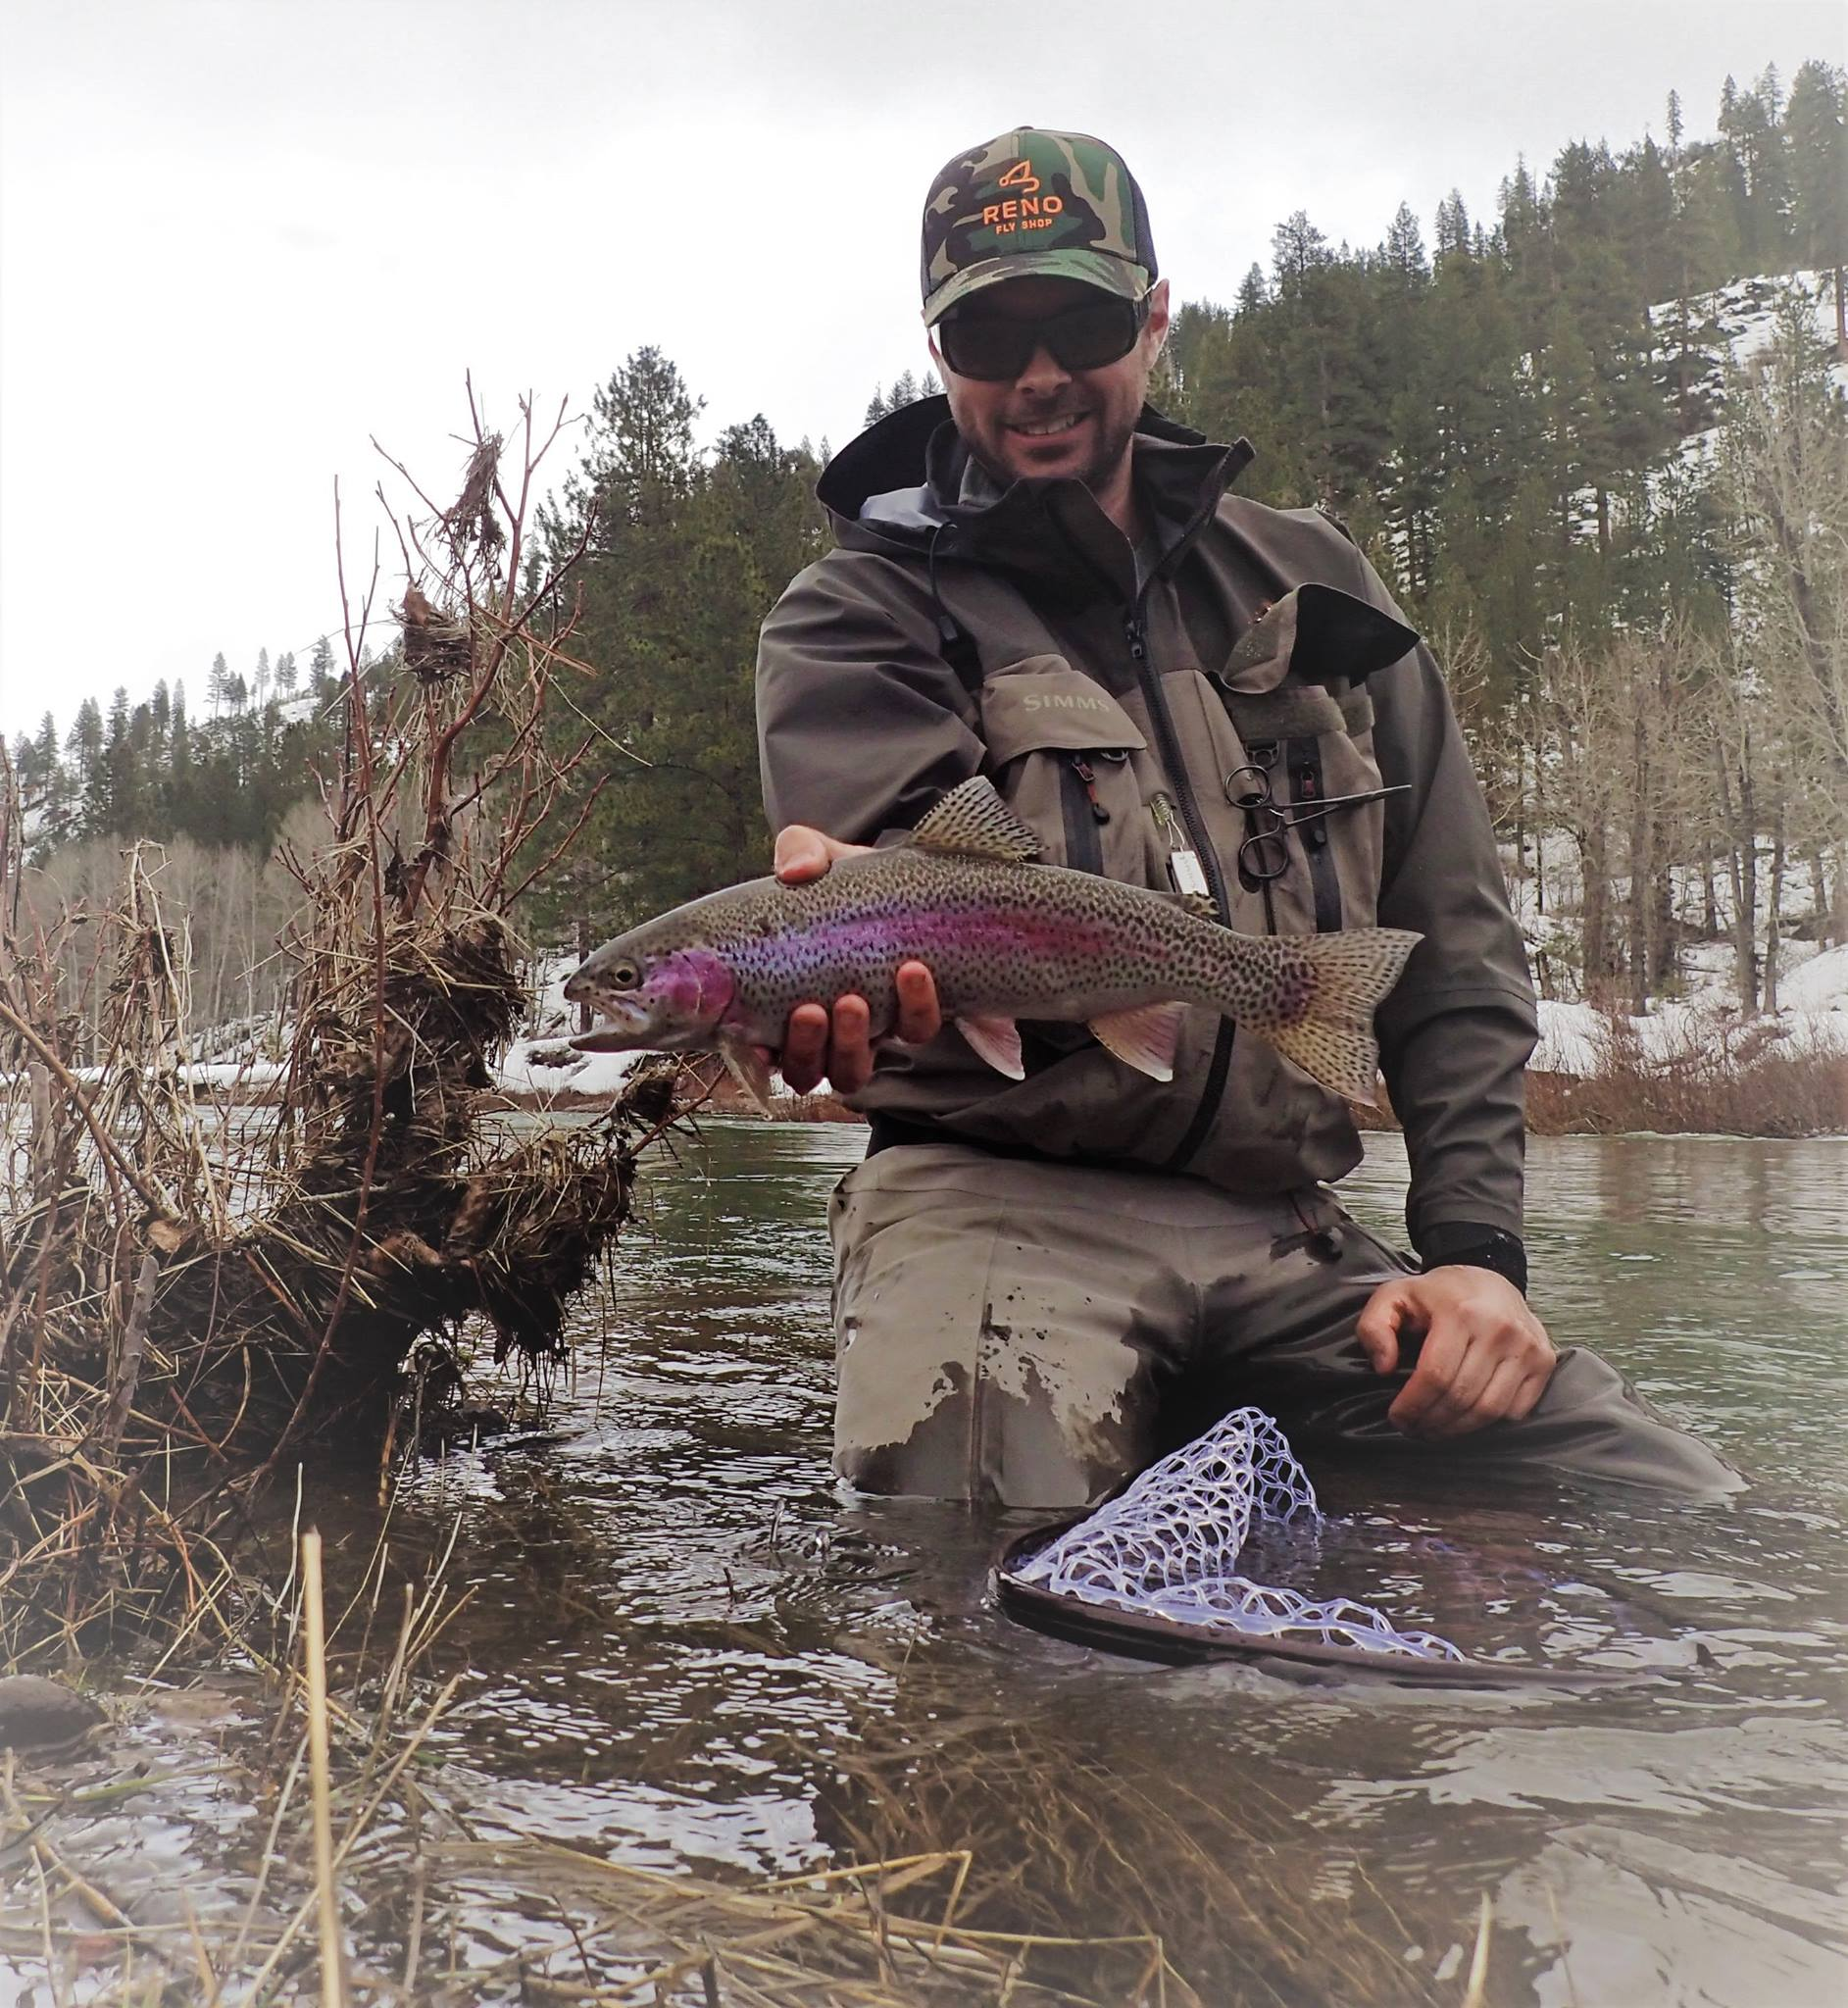 The edges often will produce the most fish in high flows.